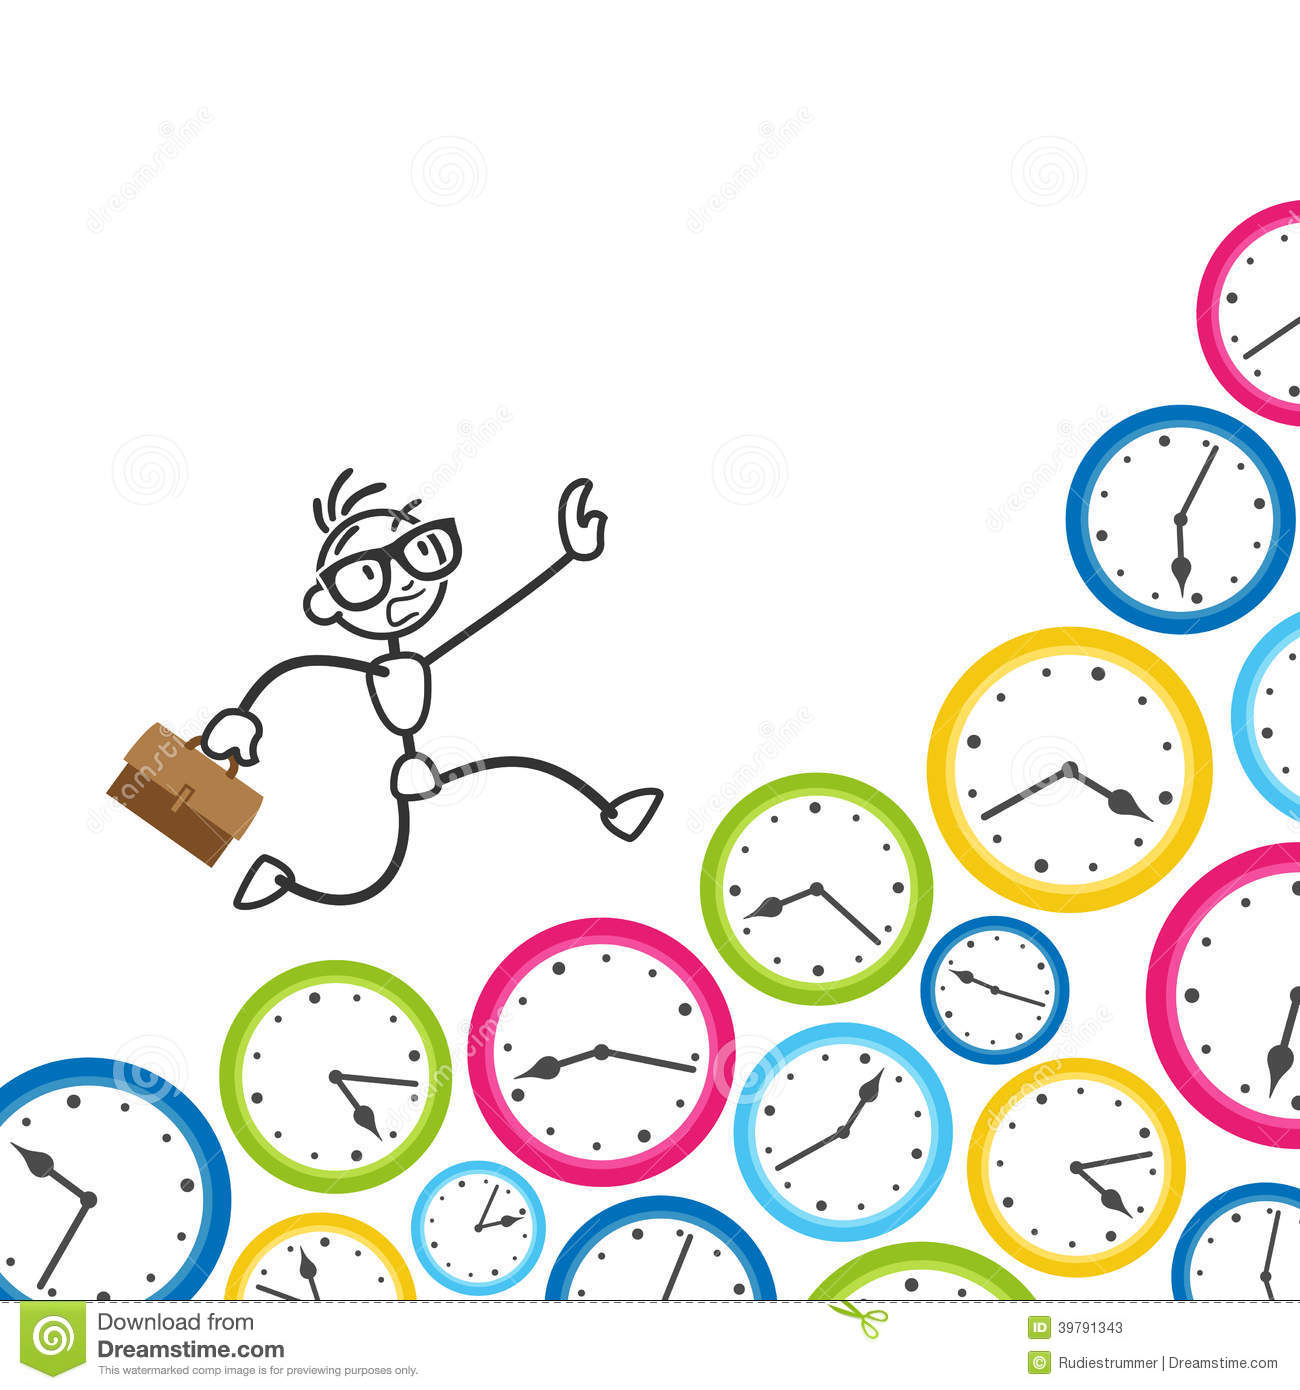 Stickman Stick Figure Time Management Clock Deadline Stock Vector ...